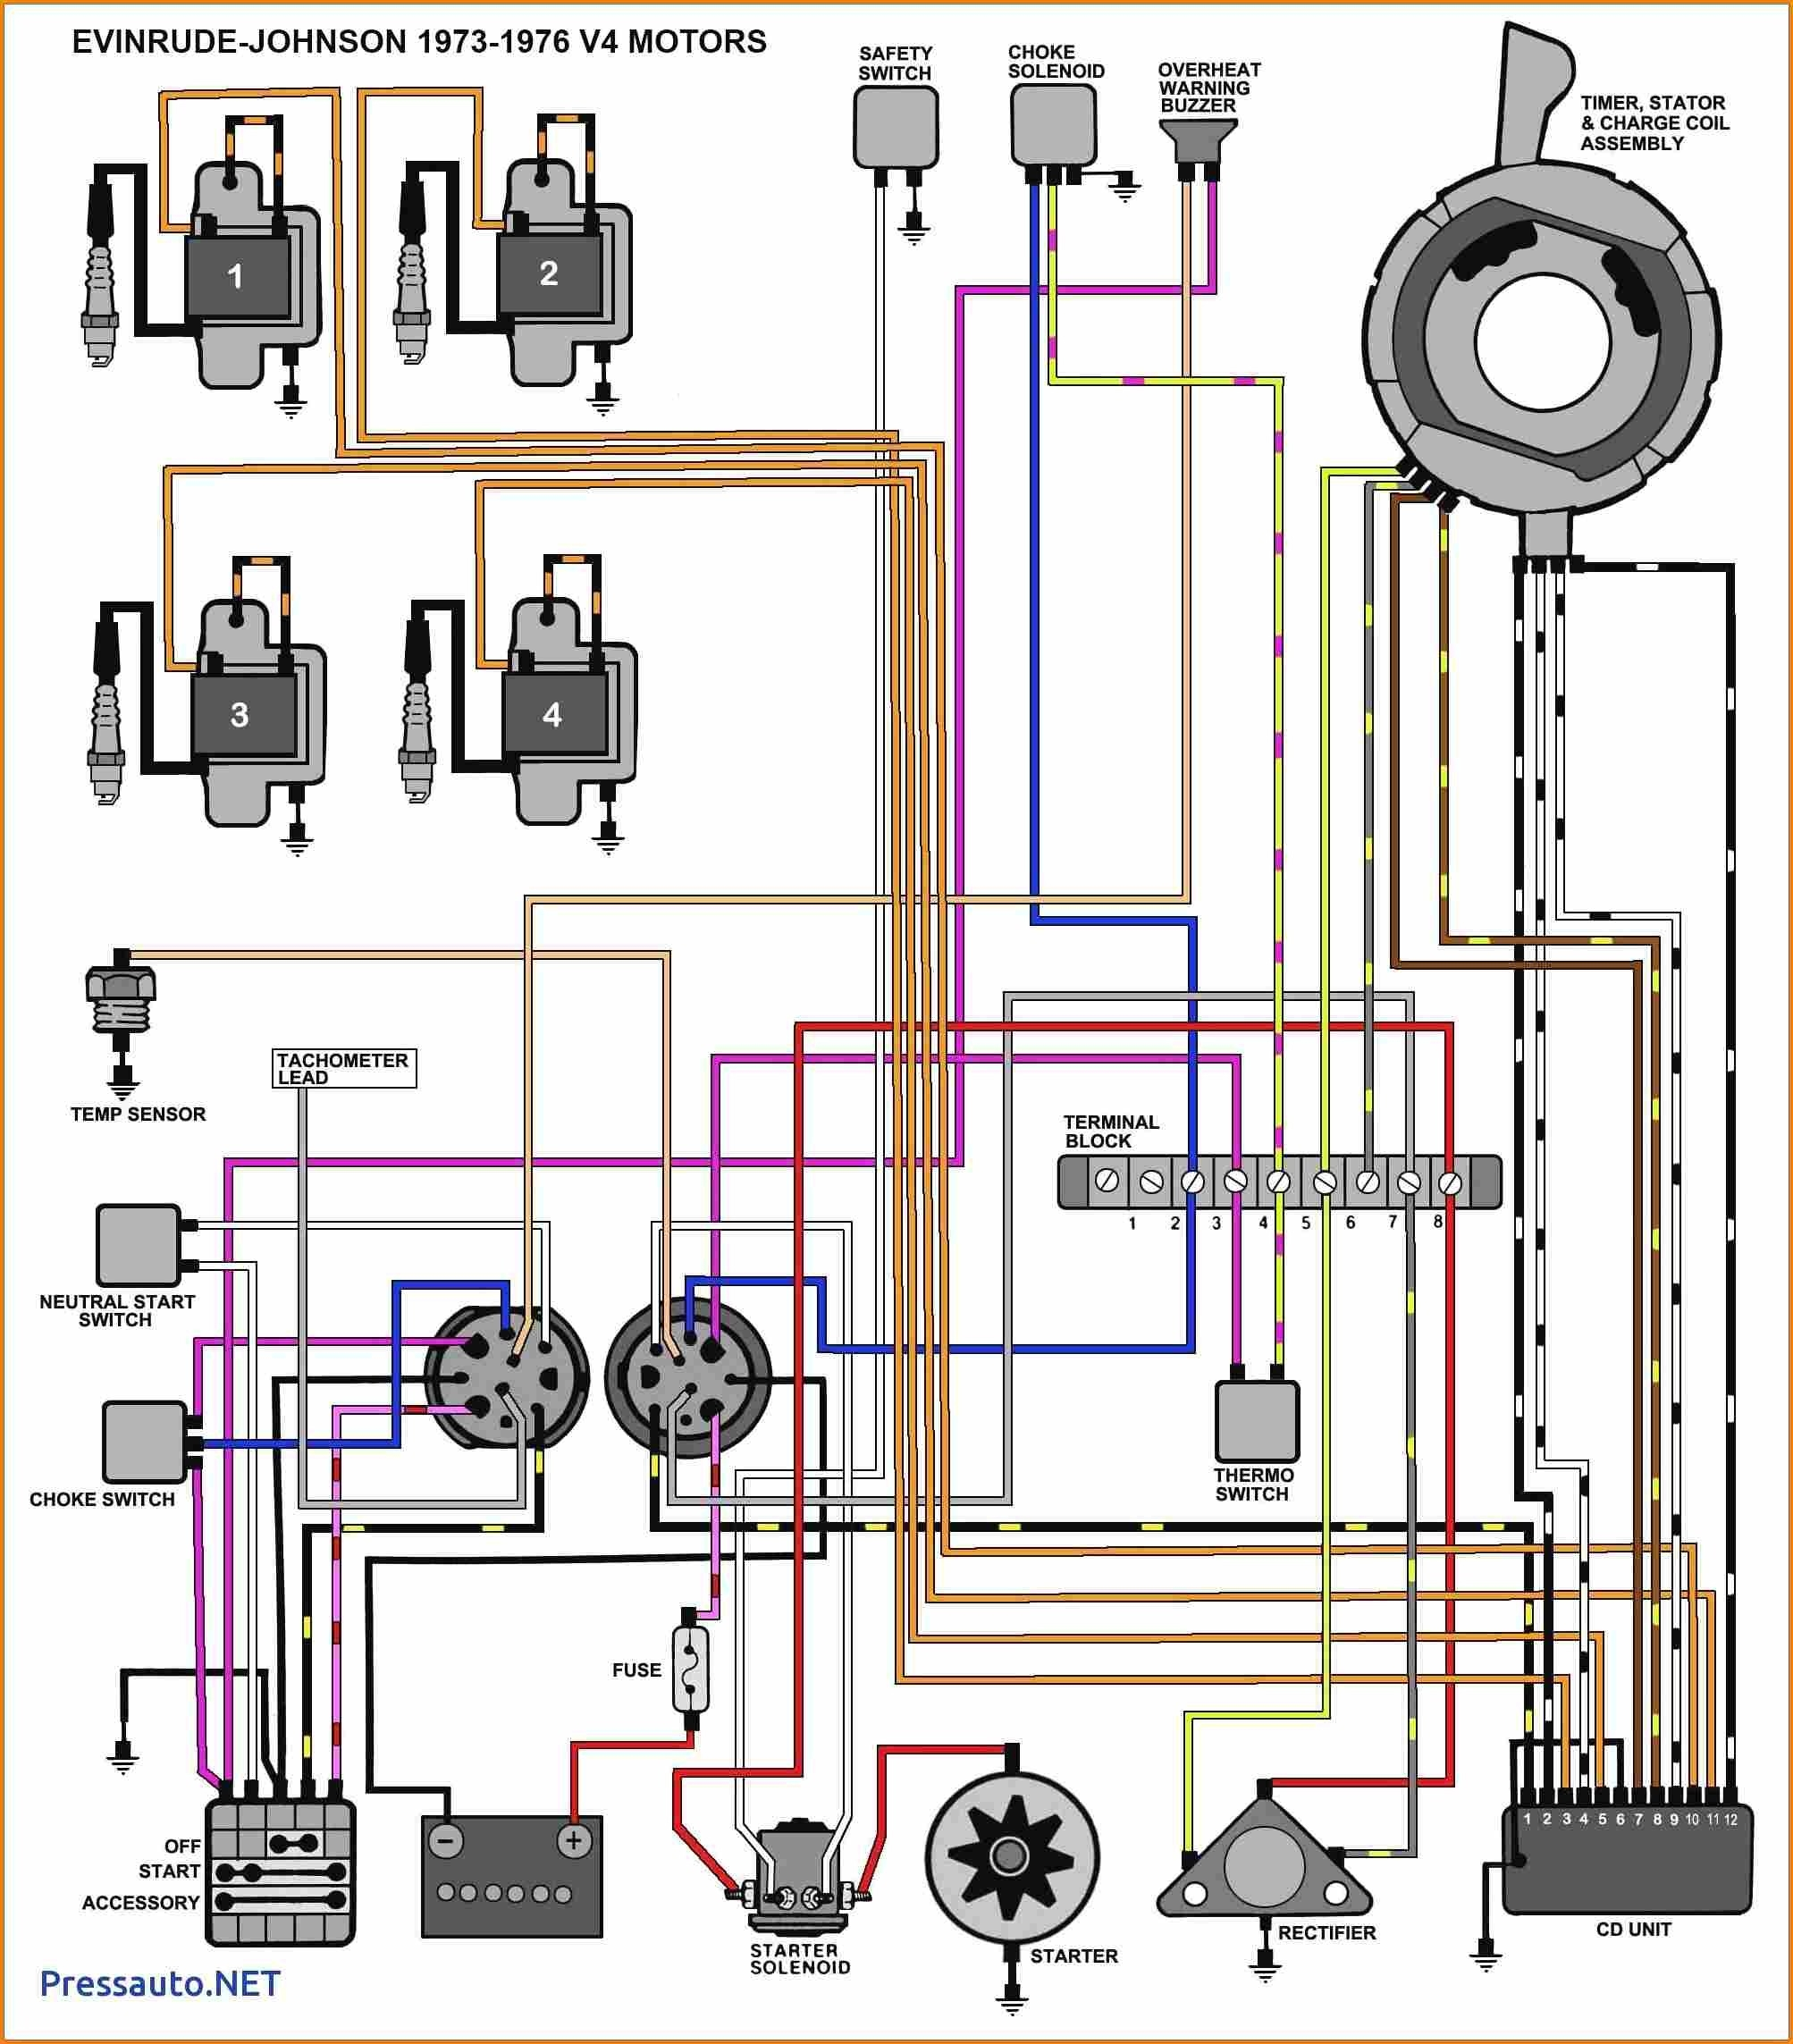 omc schematic diagrams online wiring diagram omc control wiring diagrams omc co wiring diagram online wiring